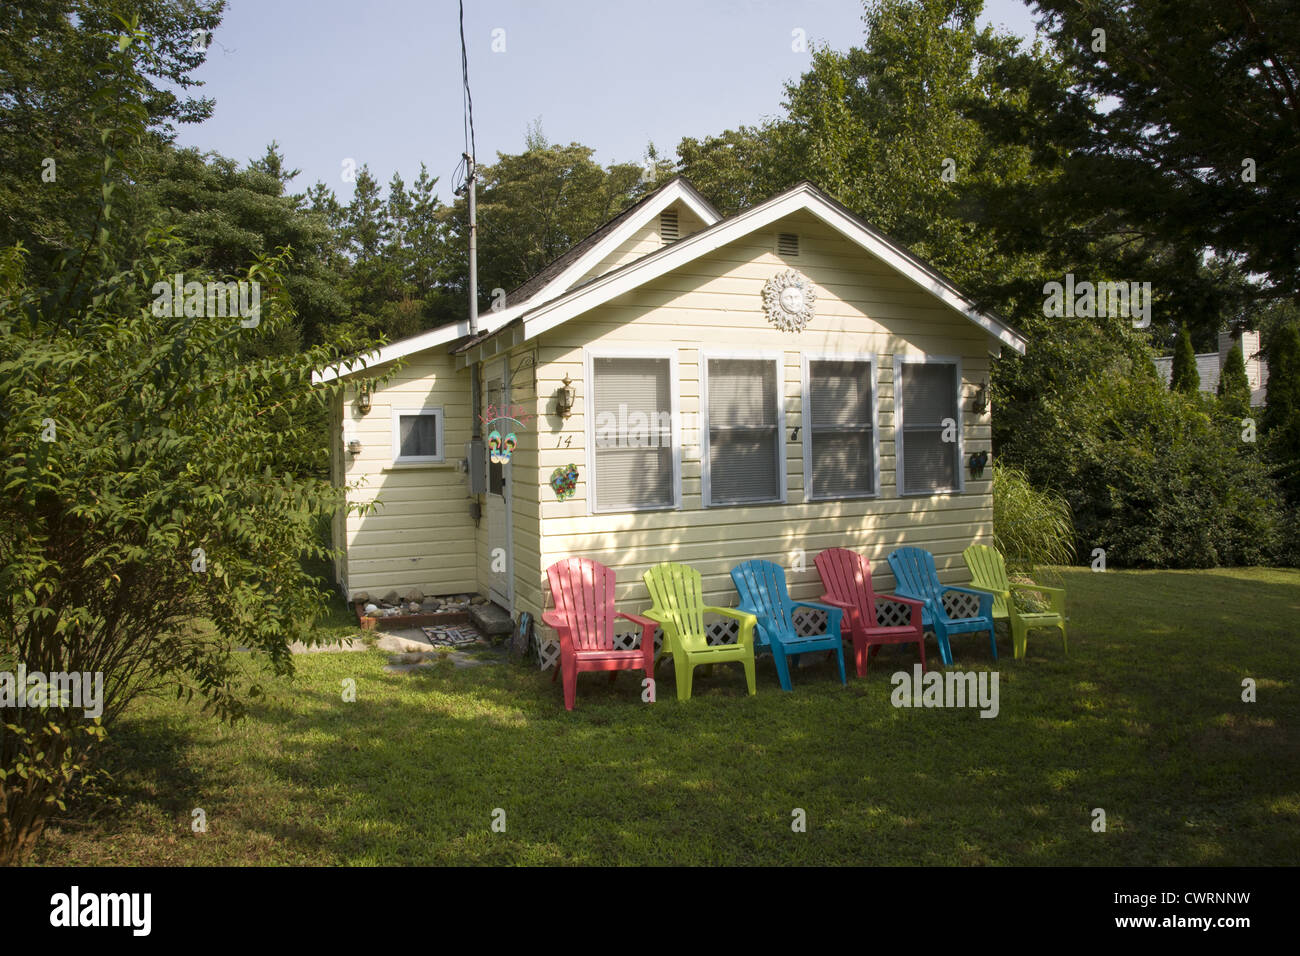 Small house with colorful lawn chairs, Riverhead, Long Island. - Stock Image